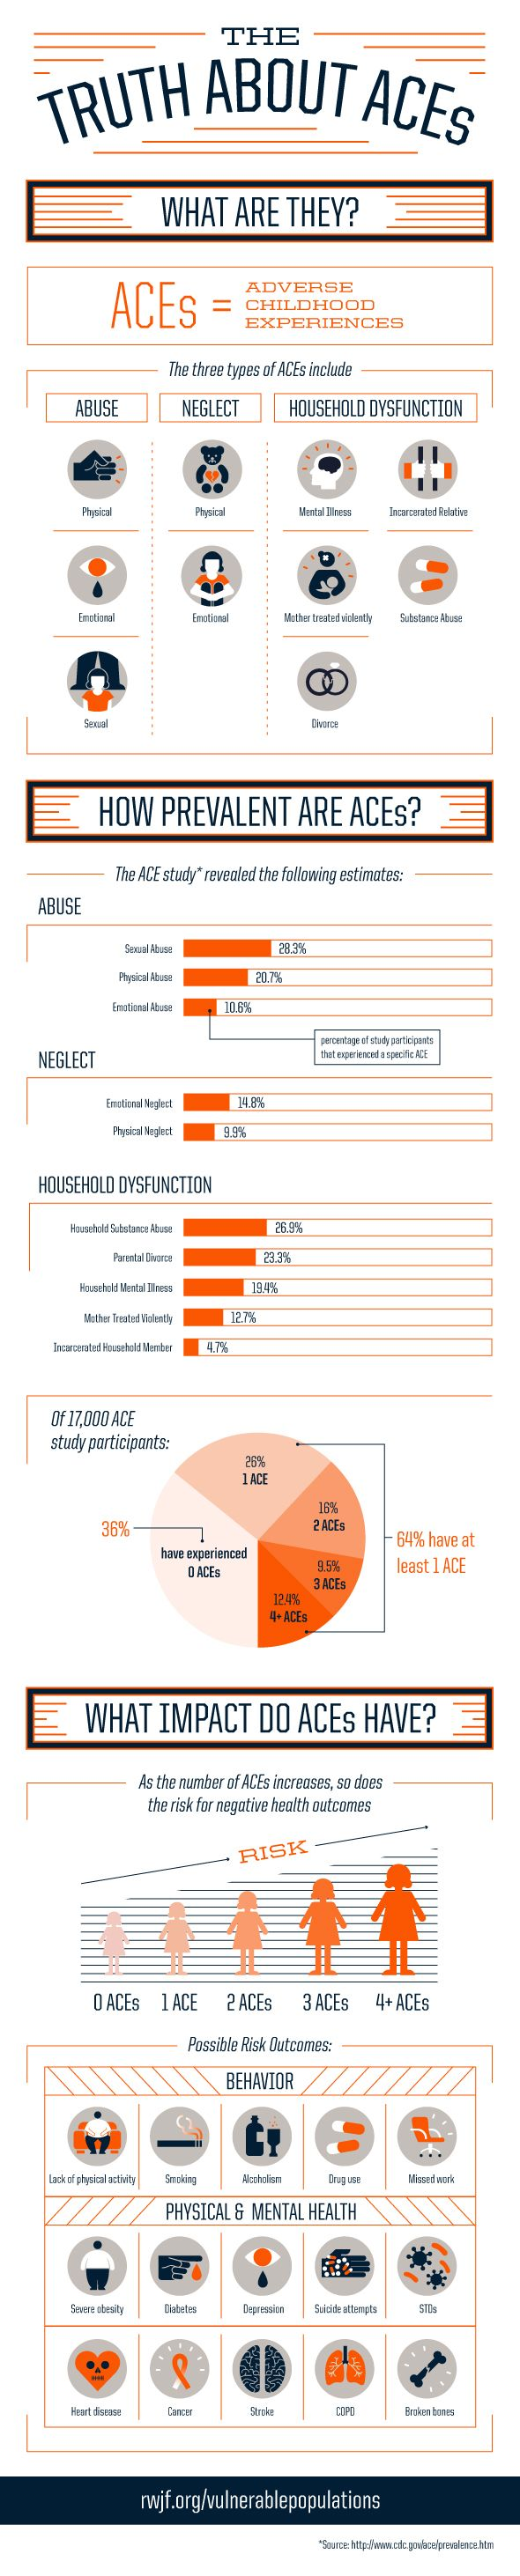 Robert Wood Johnson Foundation Infographic: The Truth About ACEs